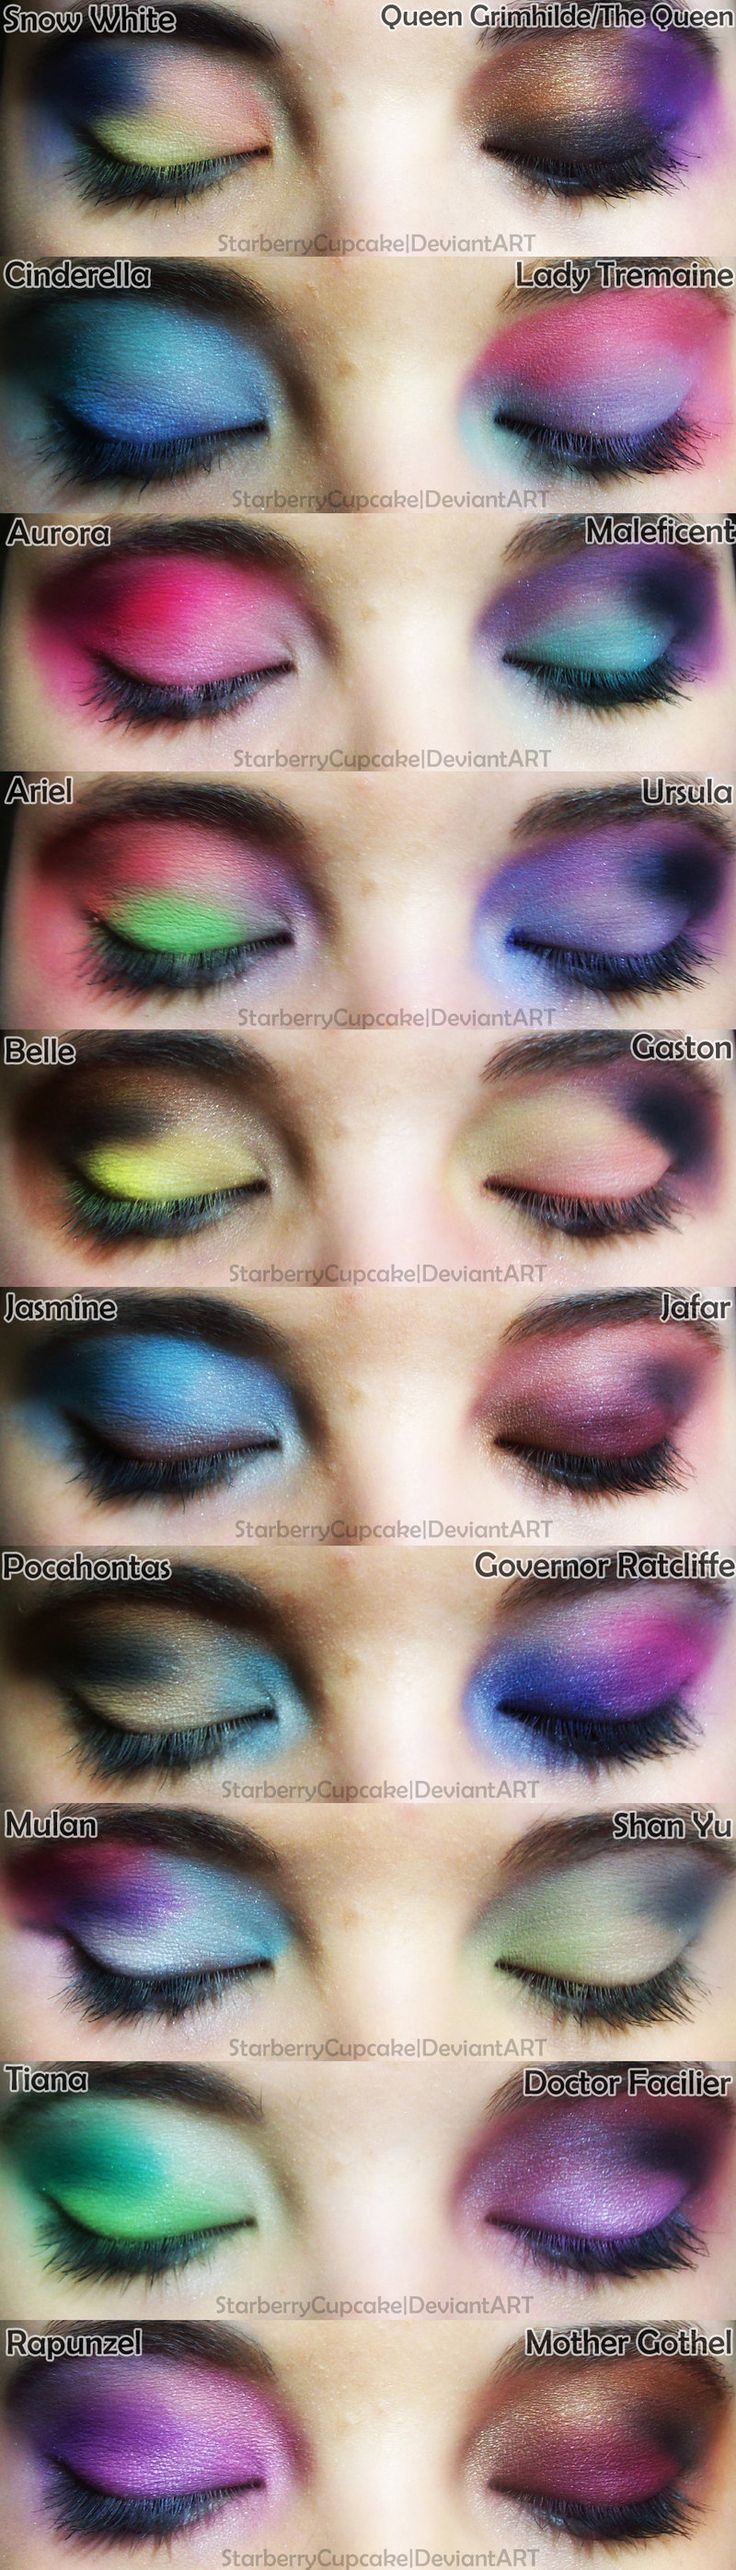 Eye makeup inspired by Disney Princesses & Villains by the super talented StarberryCupcake. On Deviant Art. Love every one of these!